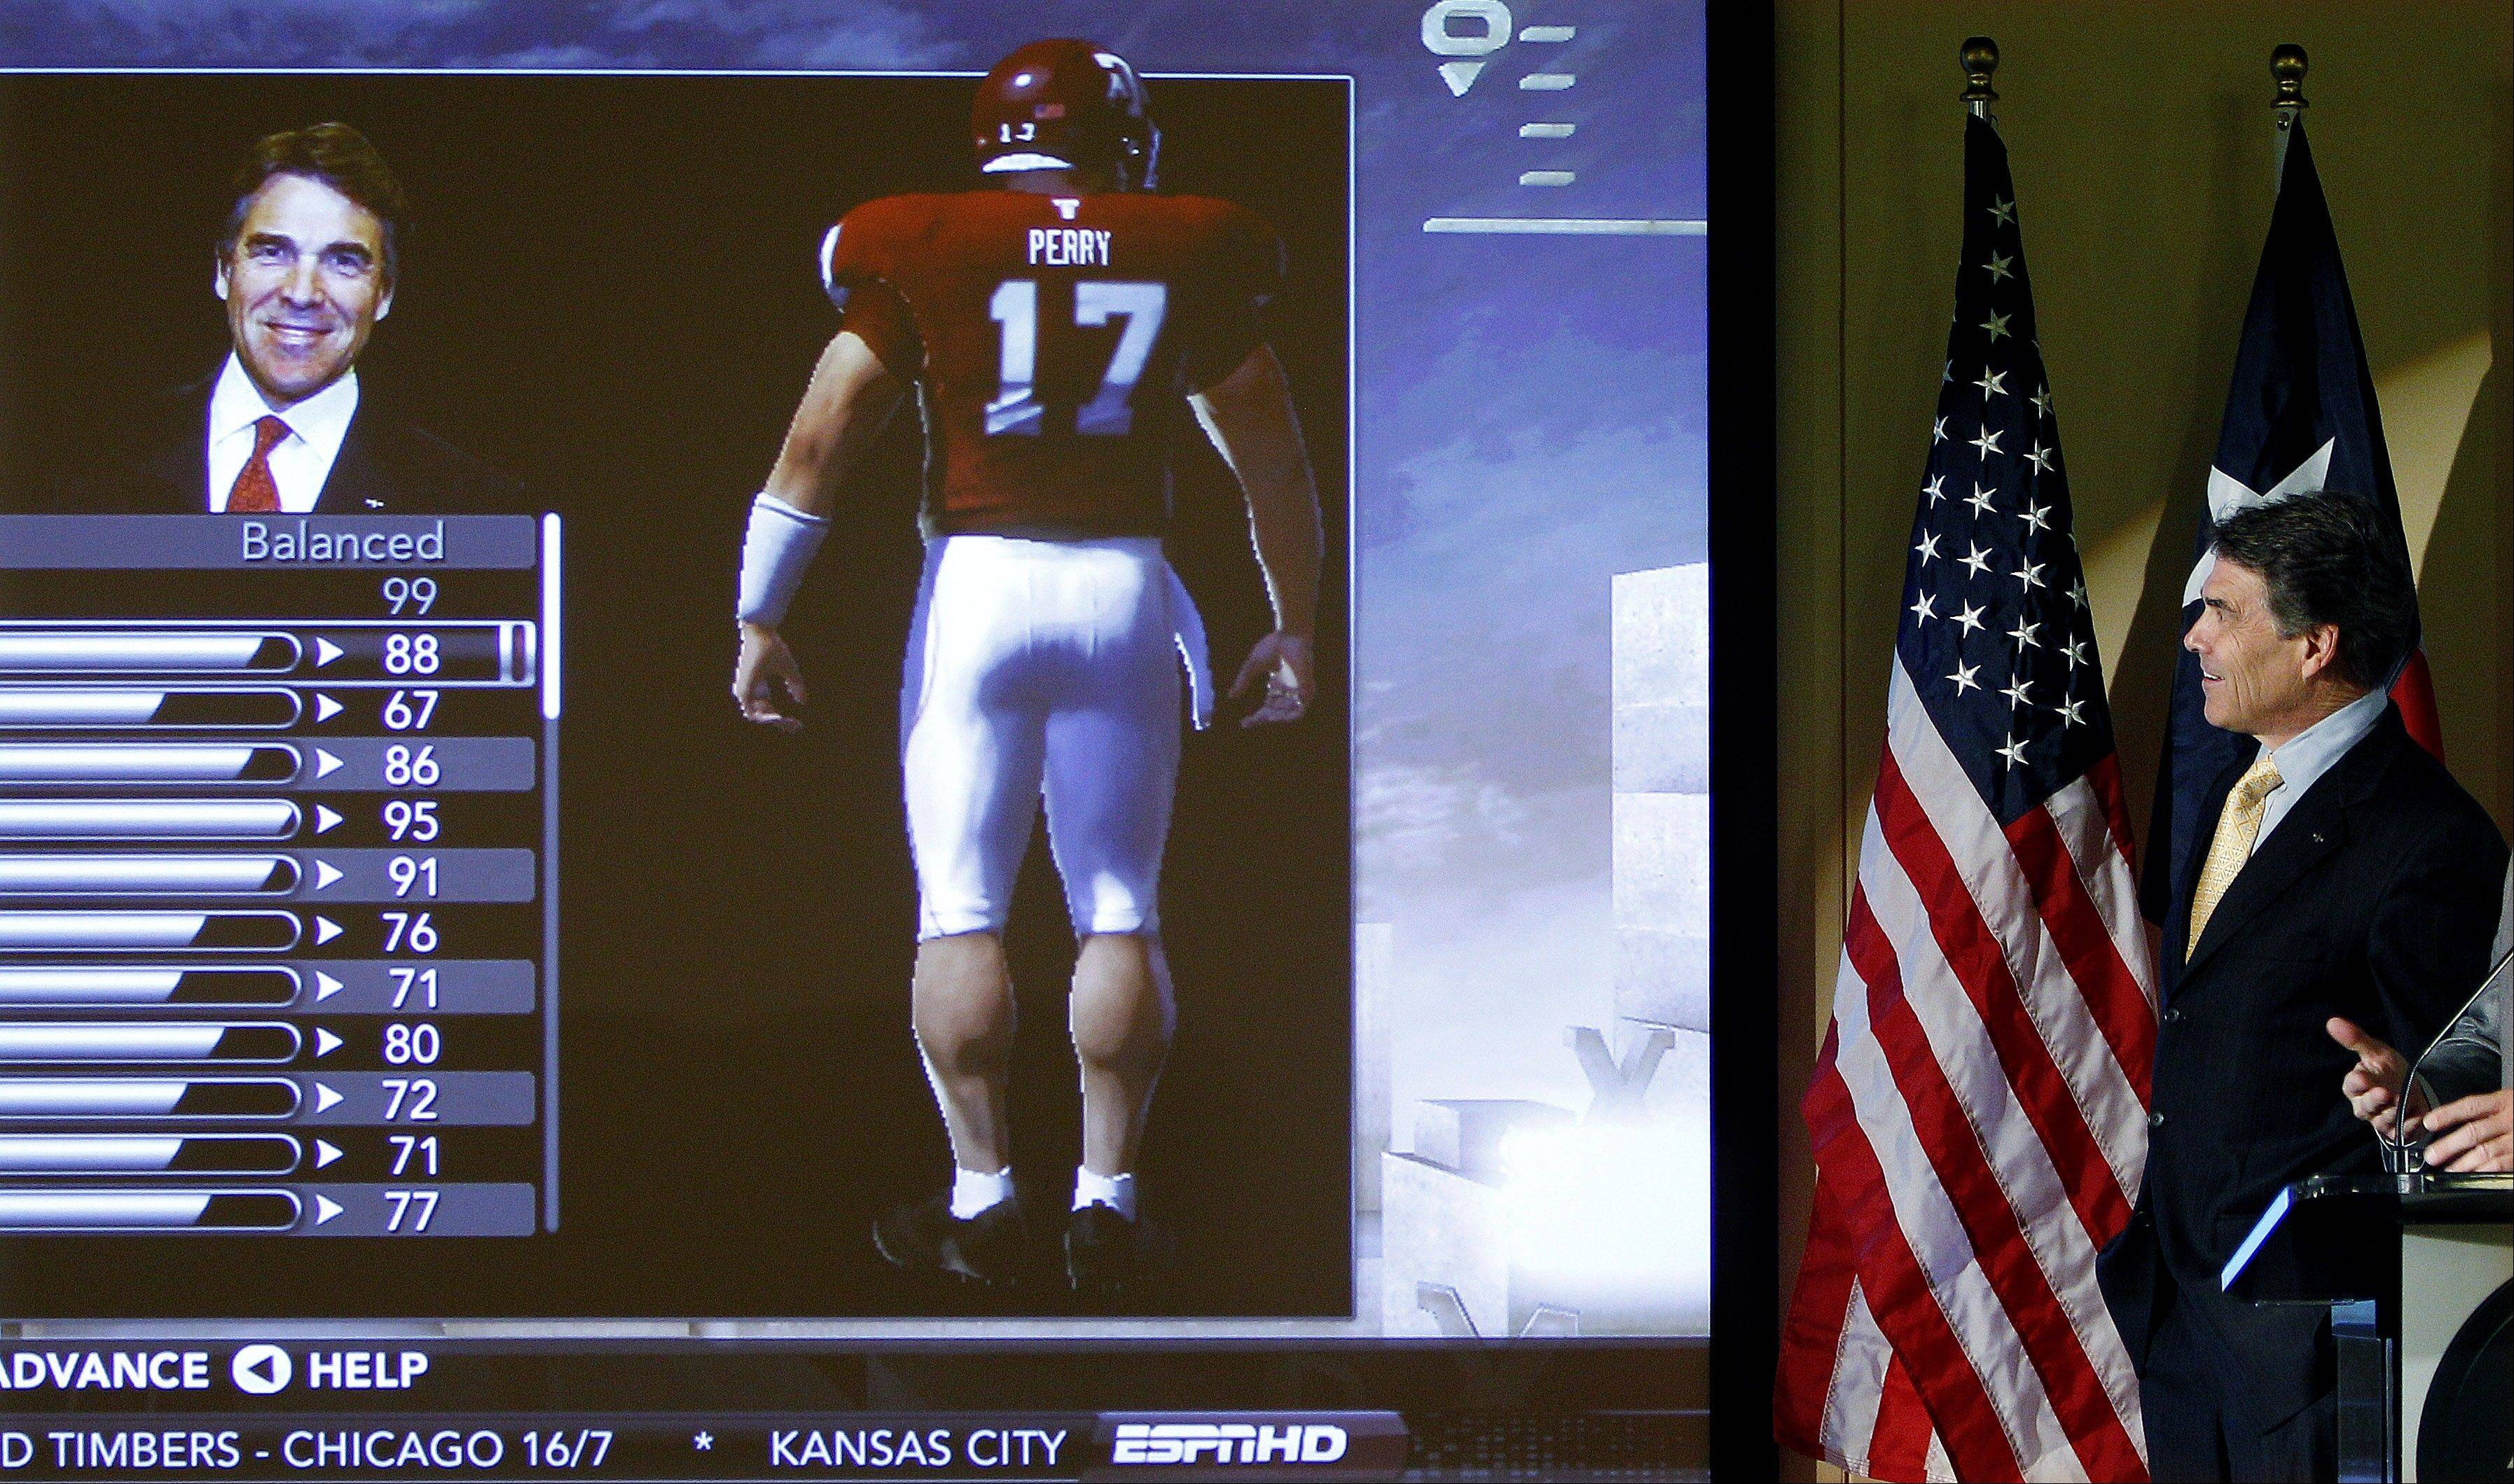 Texas Gov. Rick Perry, right, is featured in an electronic football game during a news conference Monday at Electronic Arts BioWare in Austin. Officials announced they are expanding their EA Sports division and adding 300 jobs in central Texas.